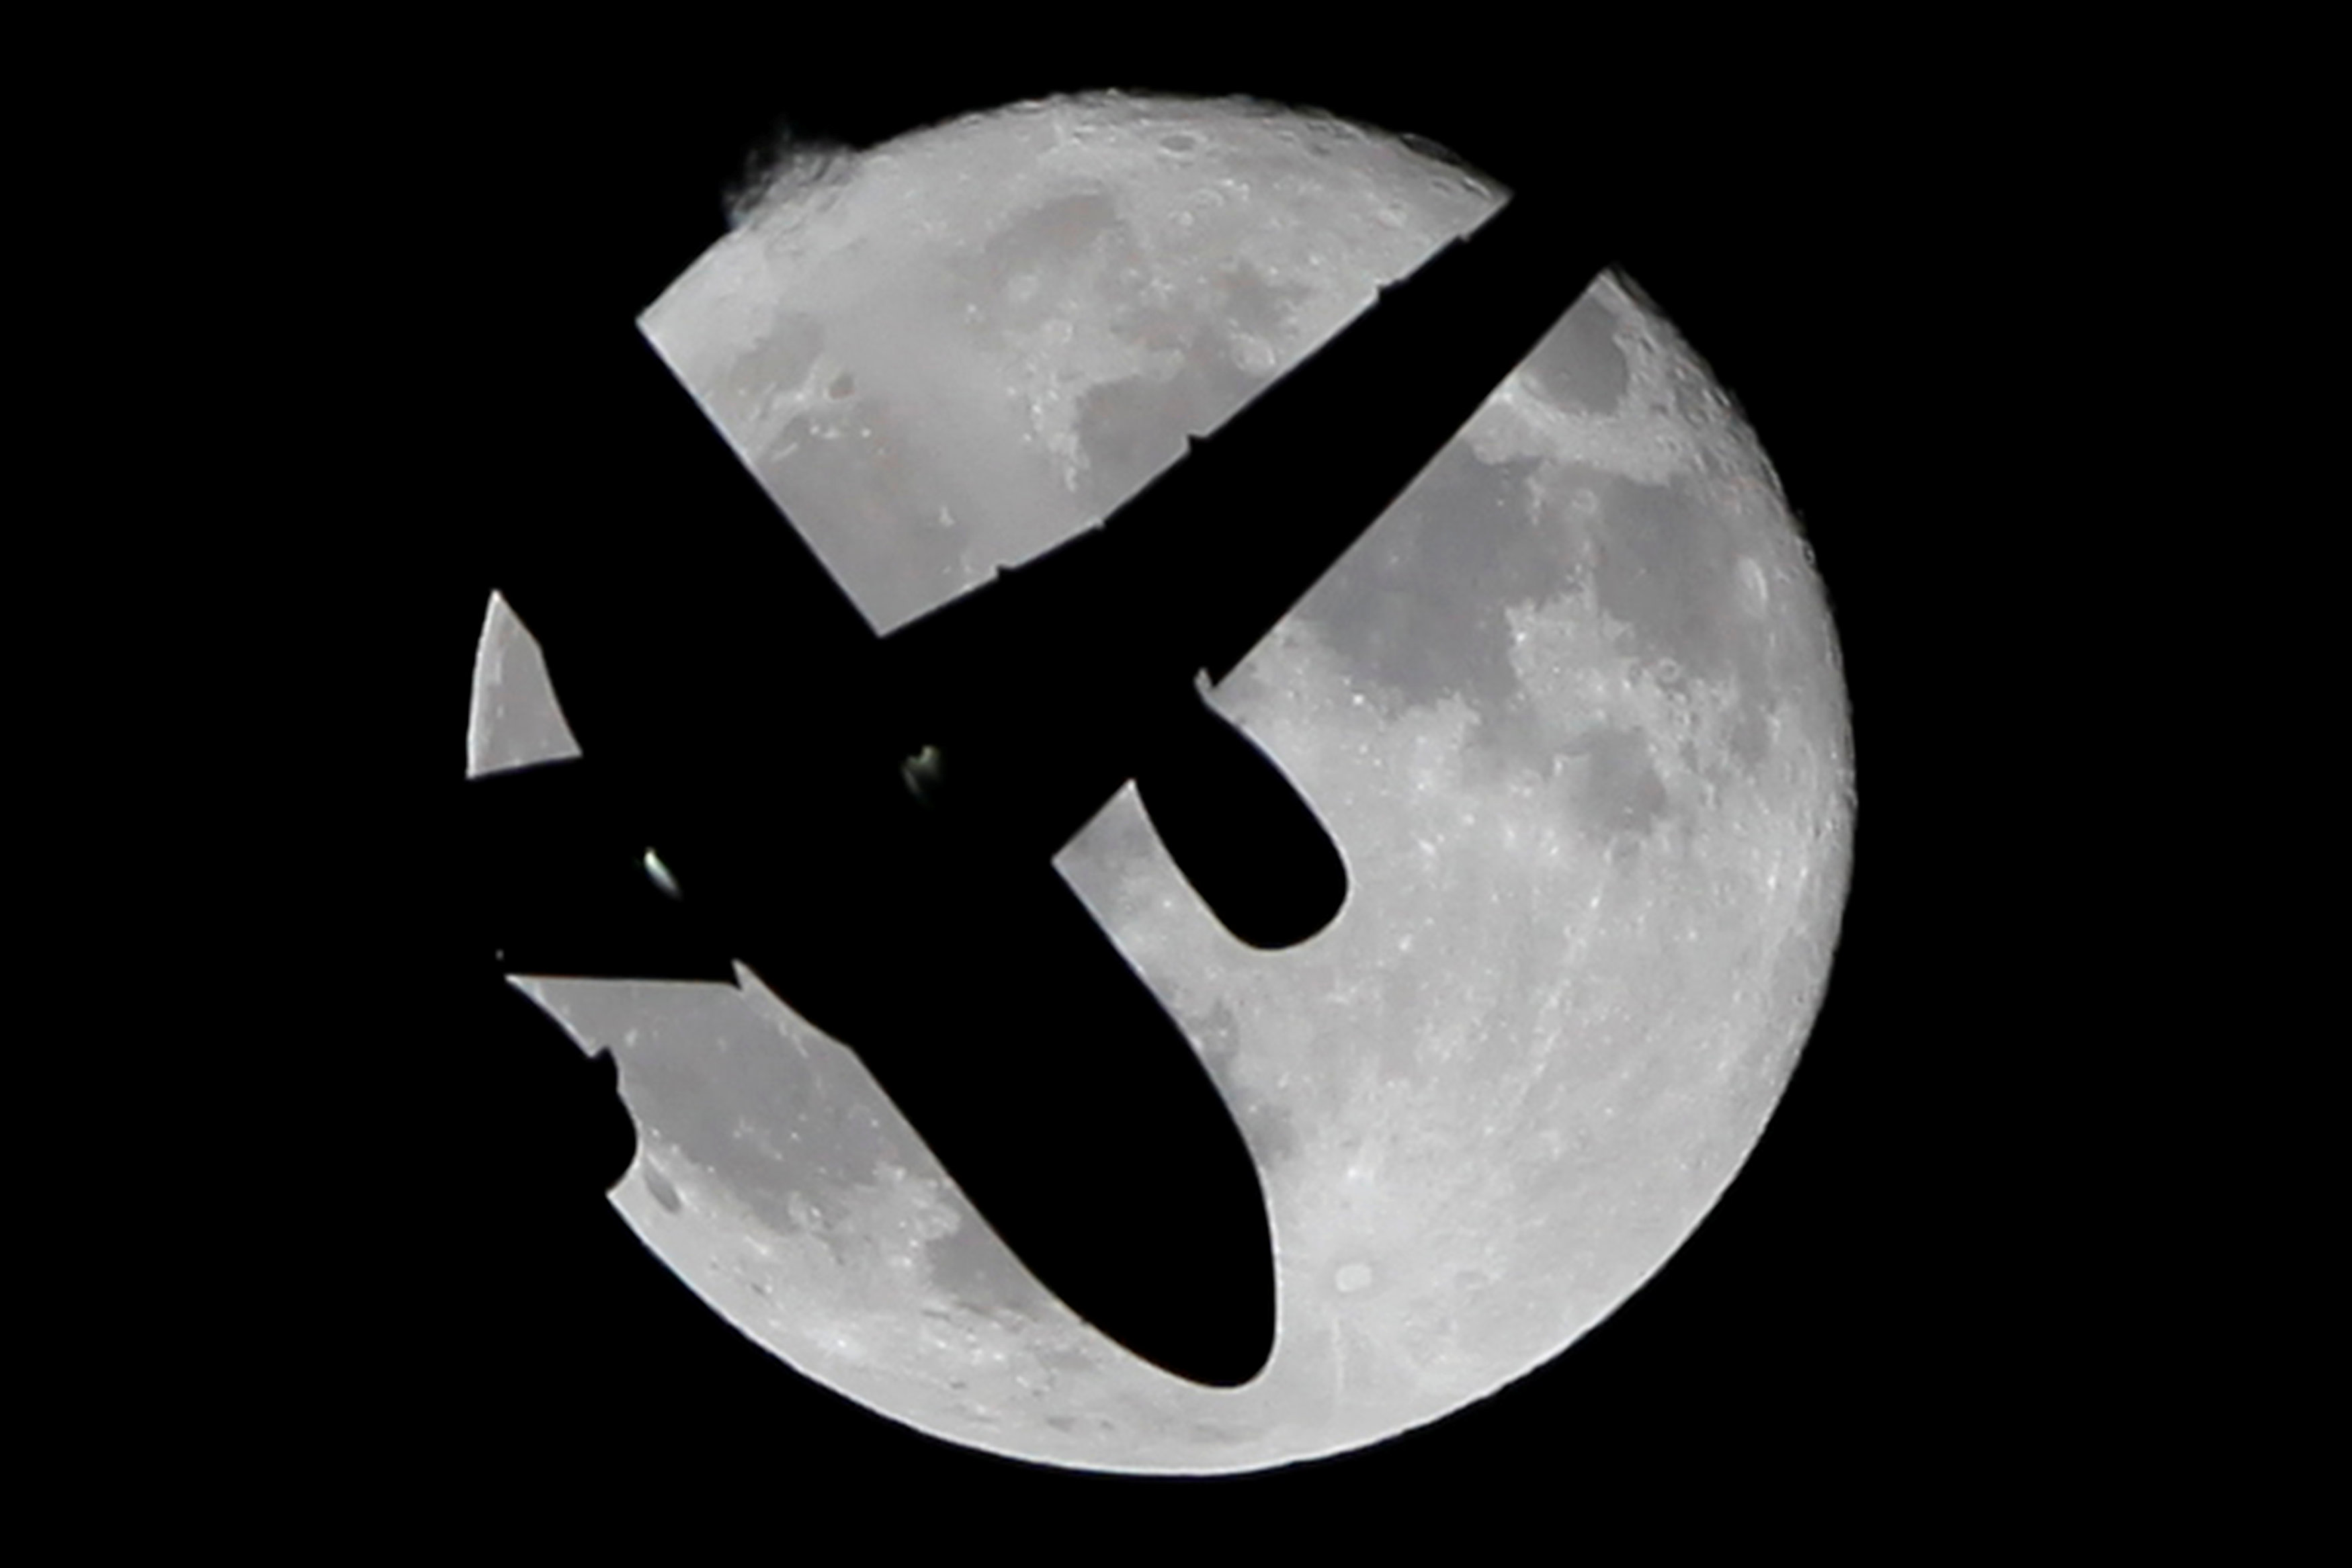 A Vueling passenger aircraft flies past a super moon in Ardales, southern Spain, October 17, 2016. REUTERS/Jon Nazca